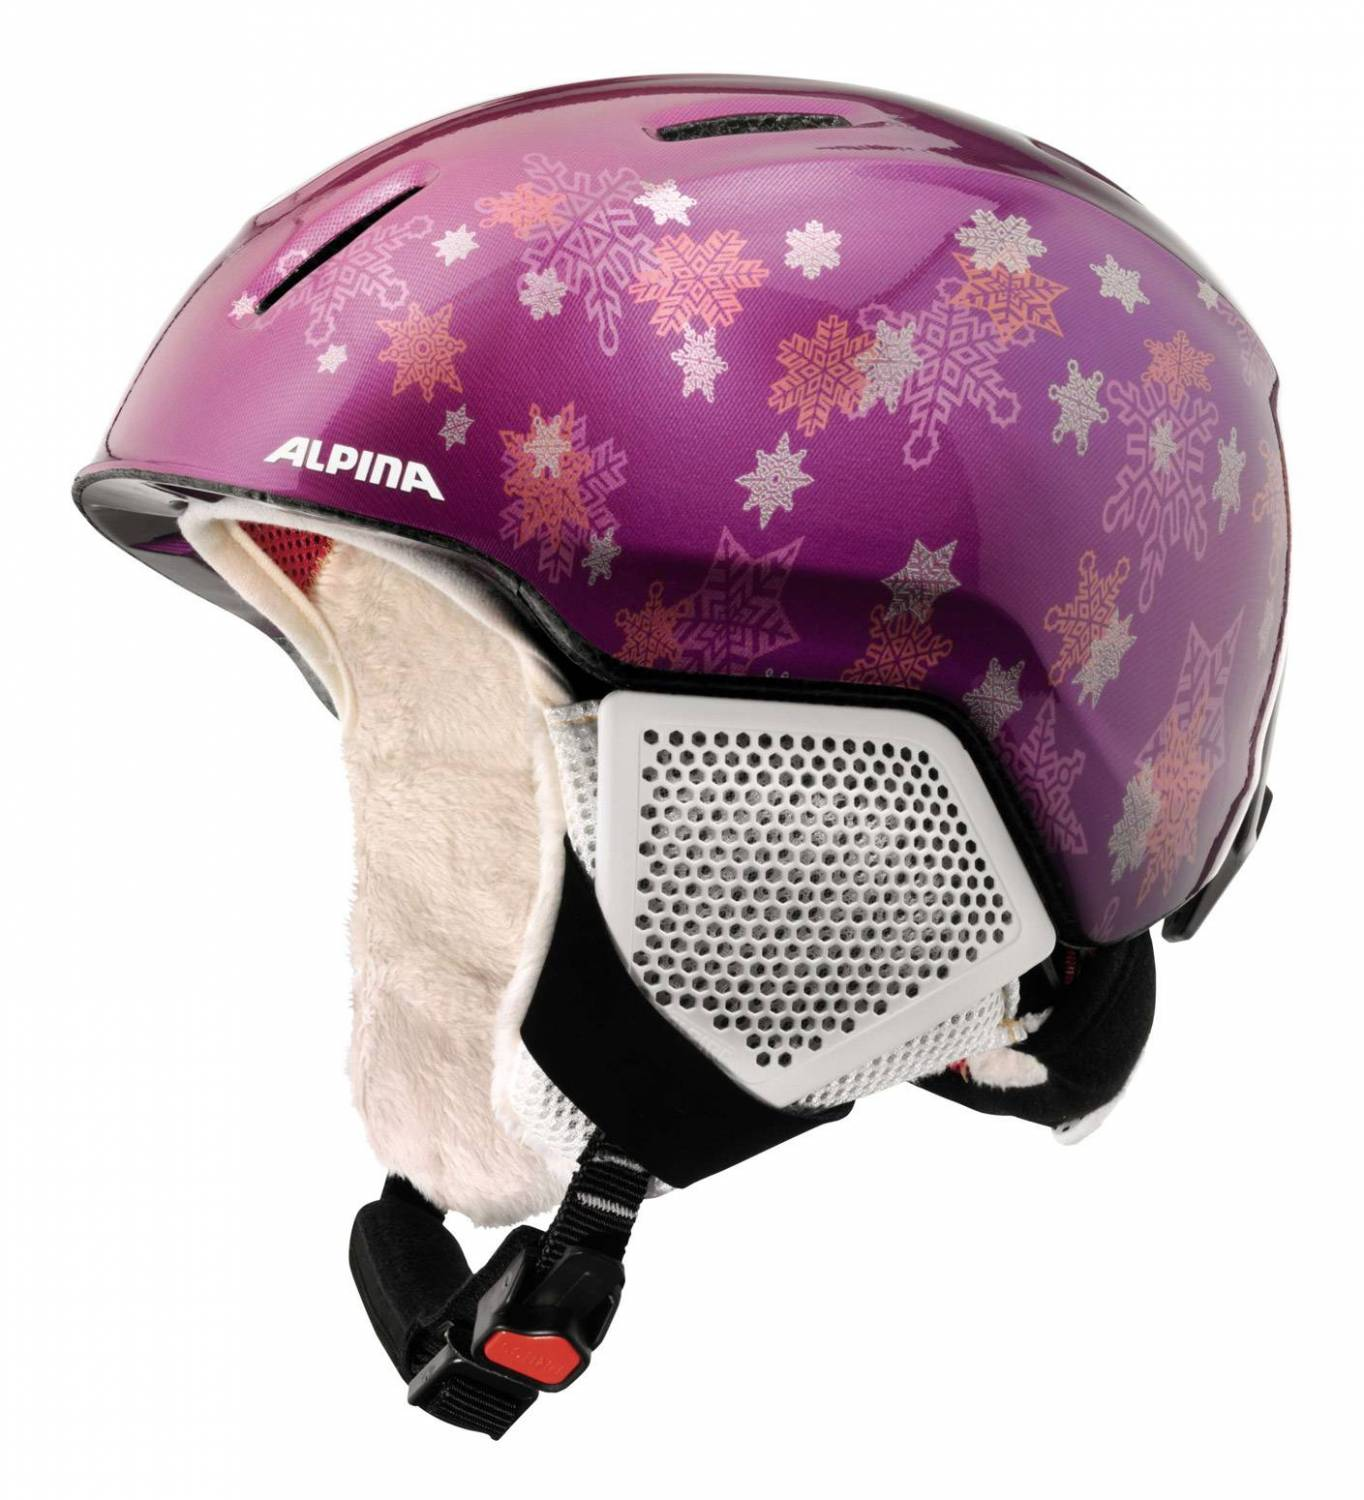 Alpina Carat LX Kinderskihelm (Größe 48 52 cm, 52 purple star)